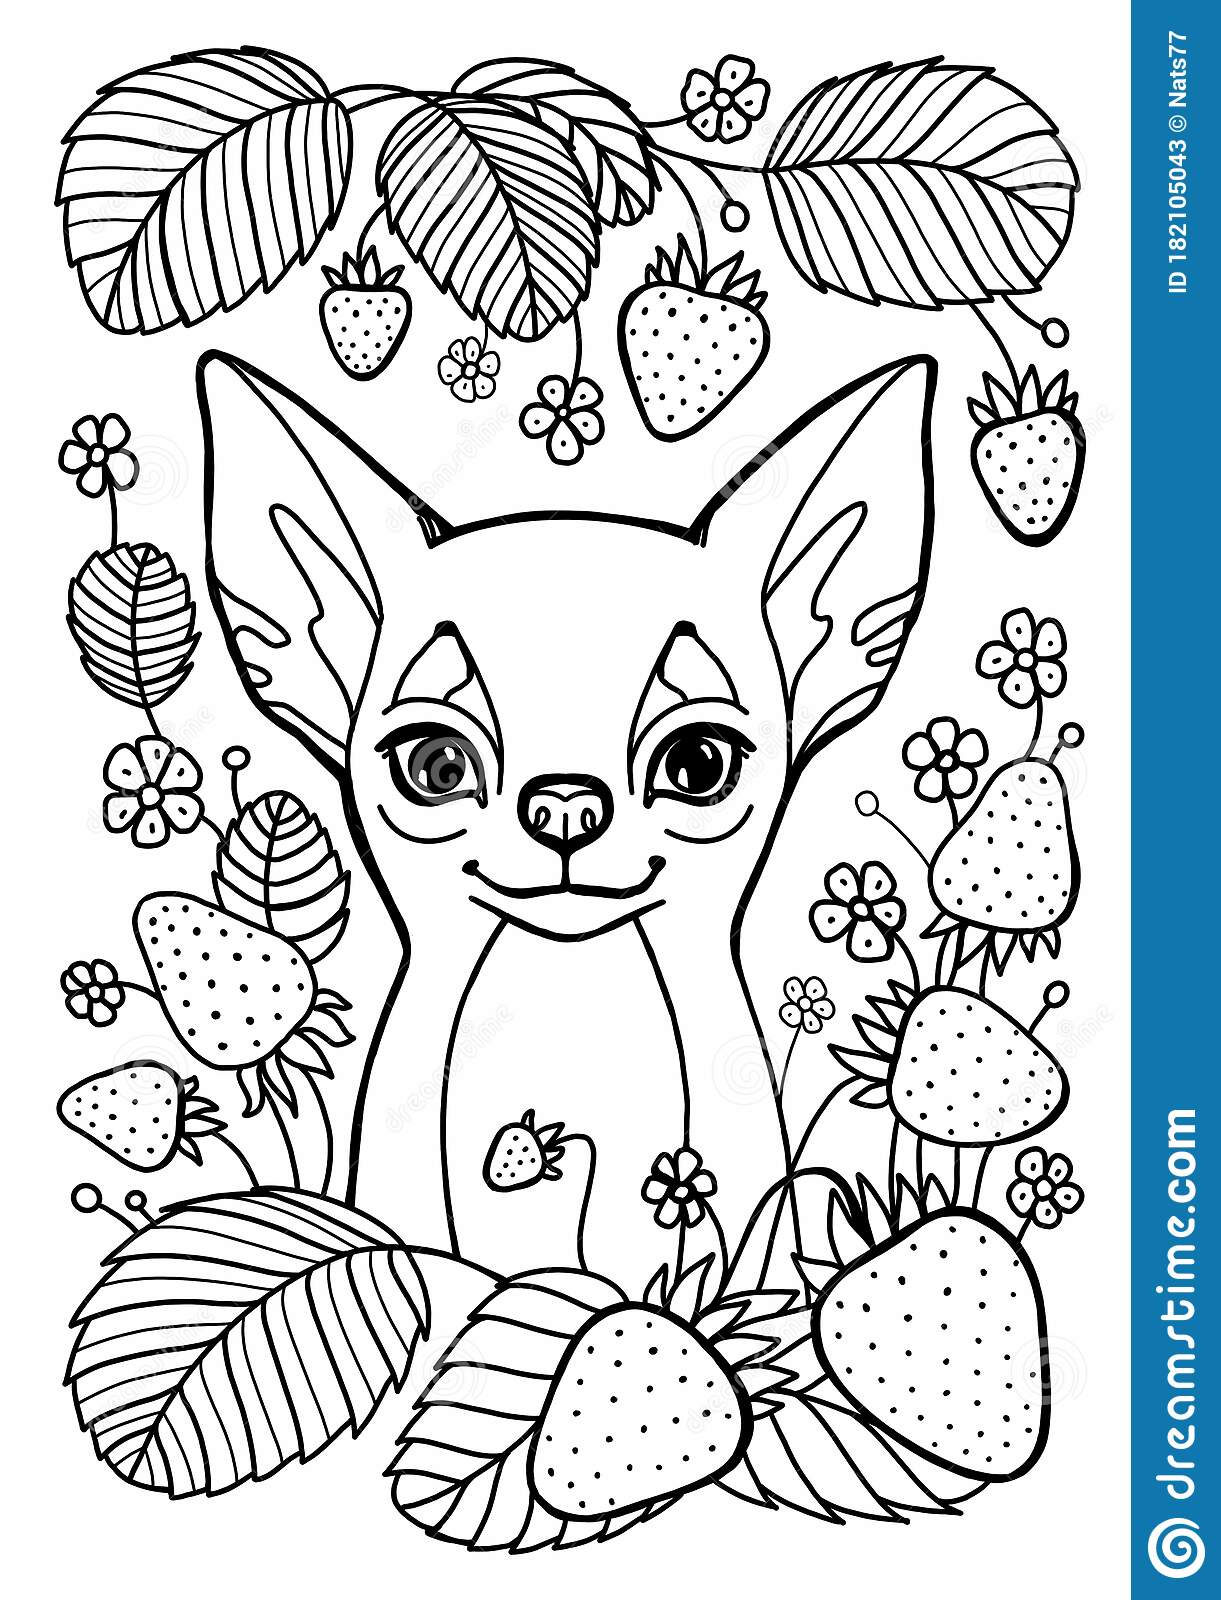 coloring lovely dog with heart for valentines card anti stress colouring chihuahua coloring pages Chihuahua Coloring Page